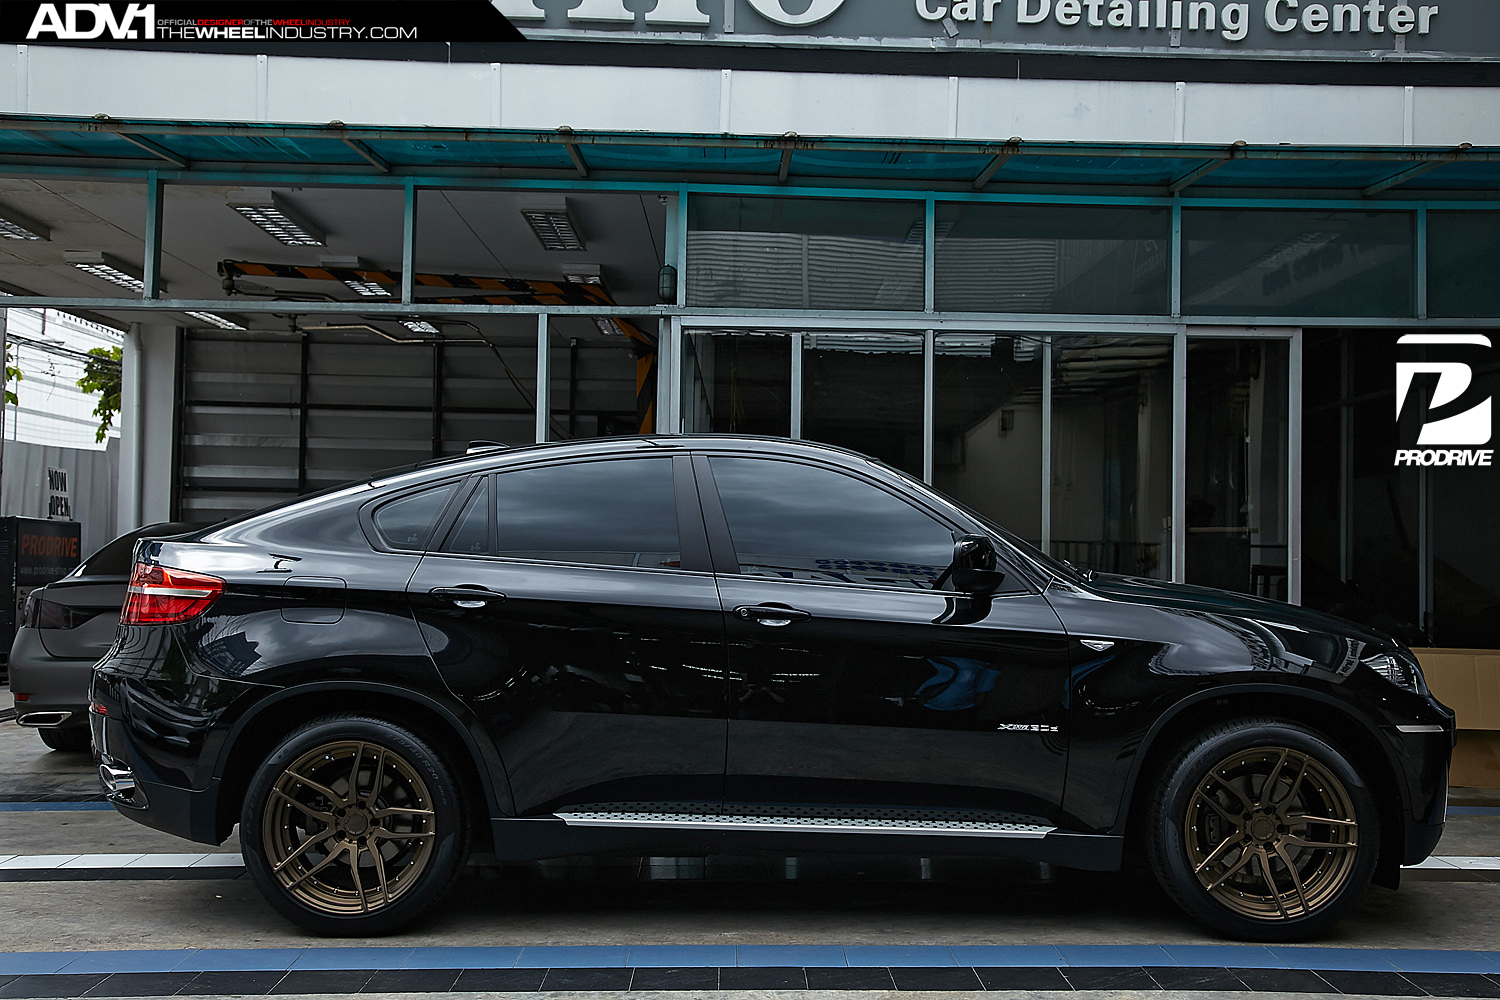 Bmw X6 Adv005 Mv2 Cs Wheels Adv 1 Wheels